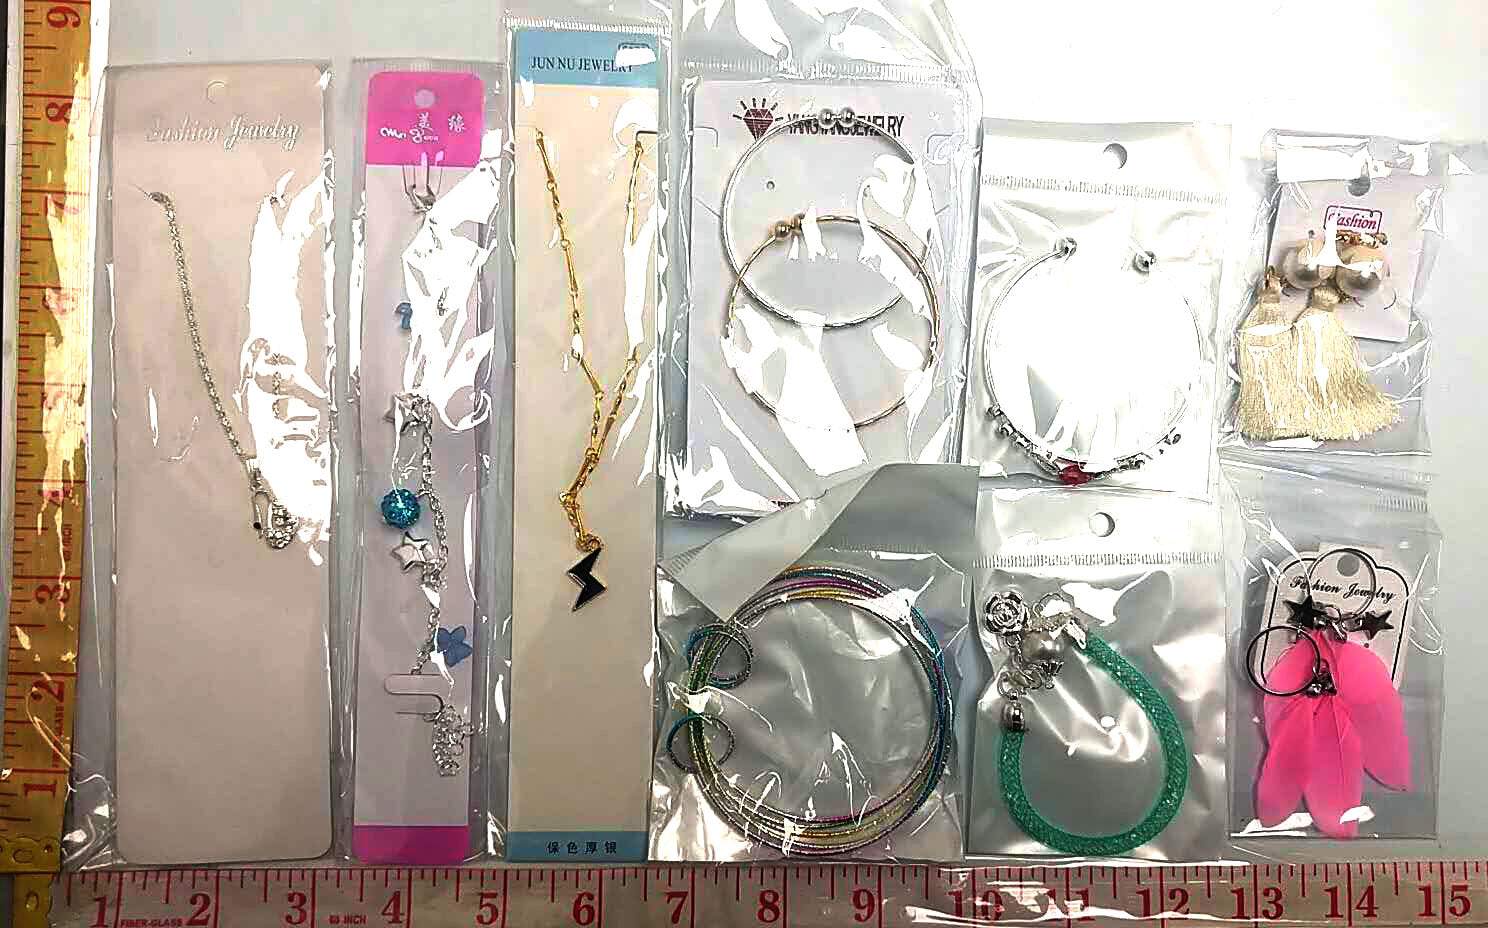 SMALL JEWELRY ACCESSORIES ANY STYLE $1.25 - Home Idol Home Improvement Outlet